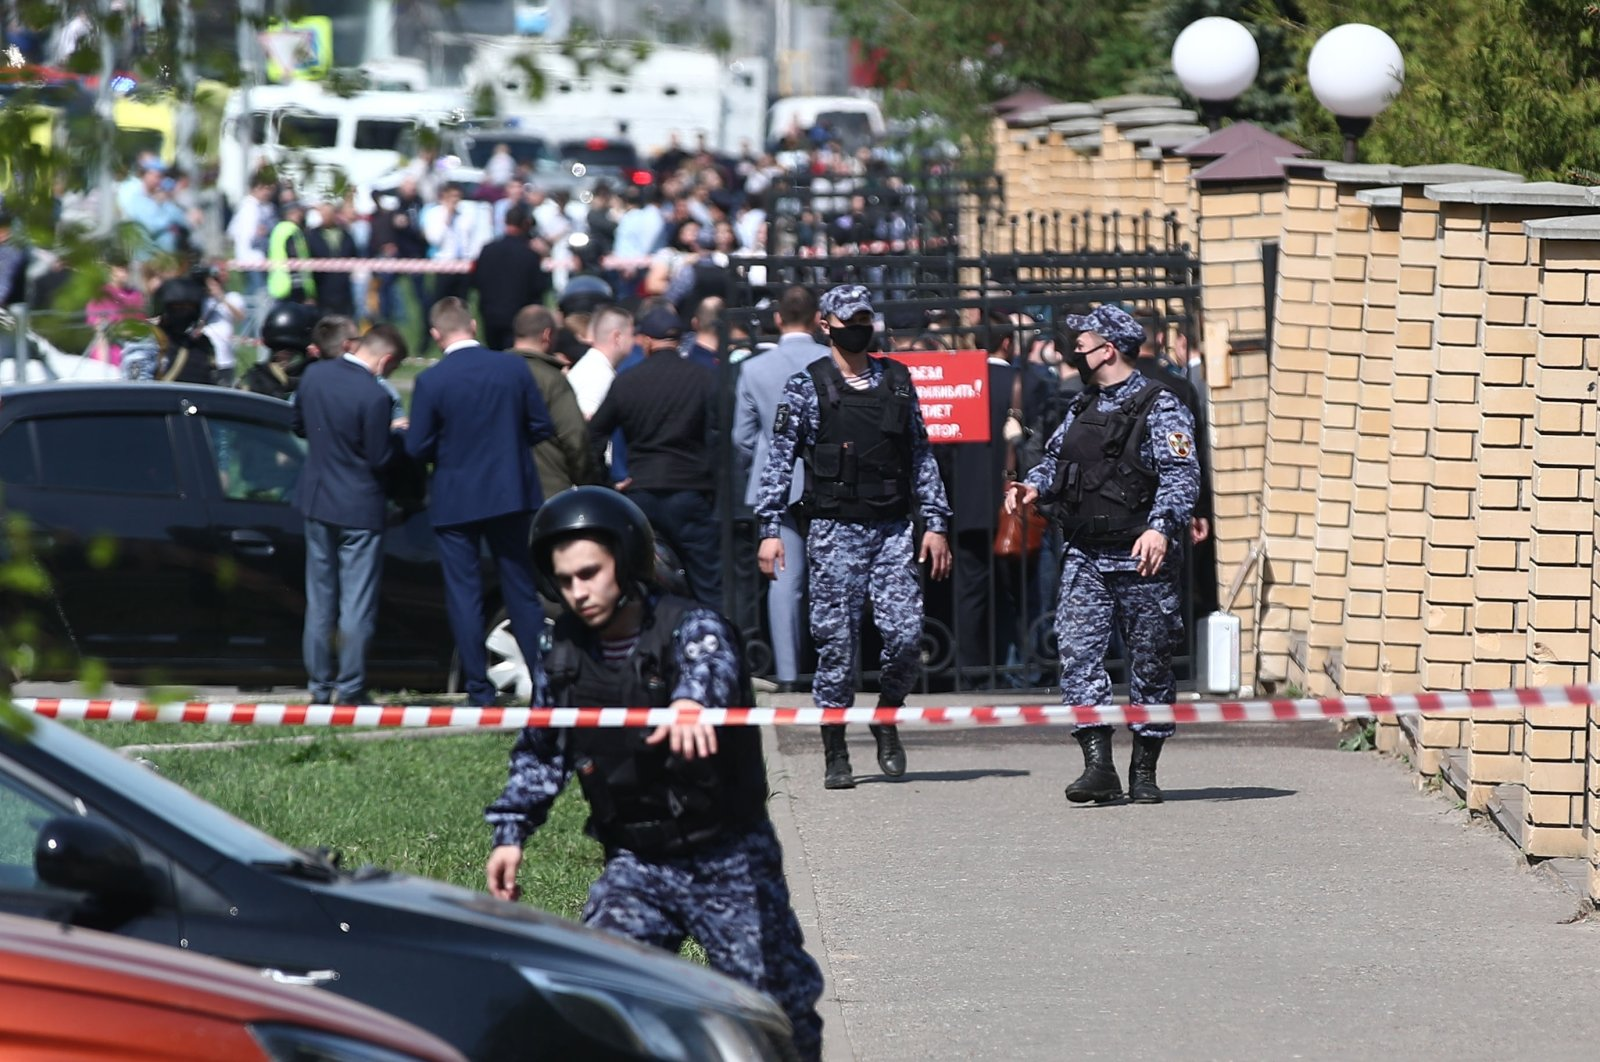 Law enforcement officers are seen at school No. 175 where potentially two attackers opened fire, Kazan, Russia, May 11, 2021. (TASS via Reuters)